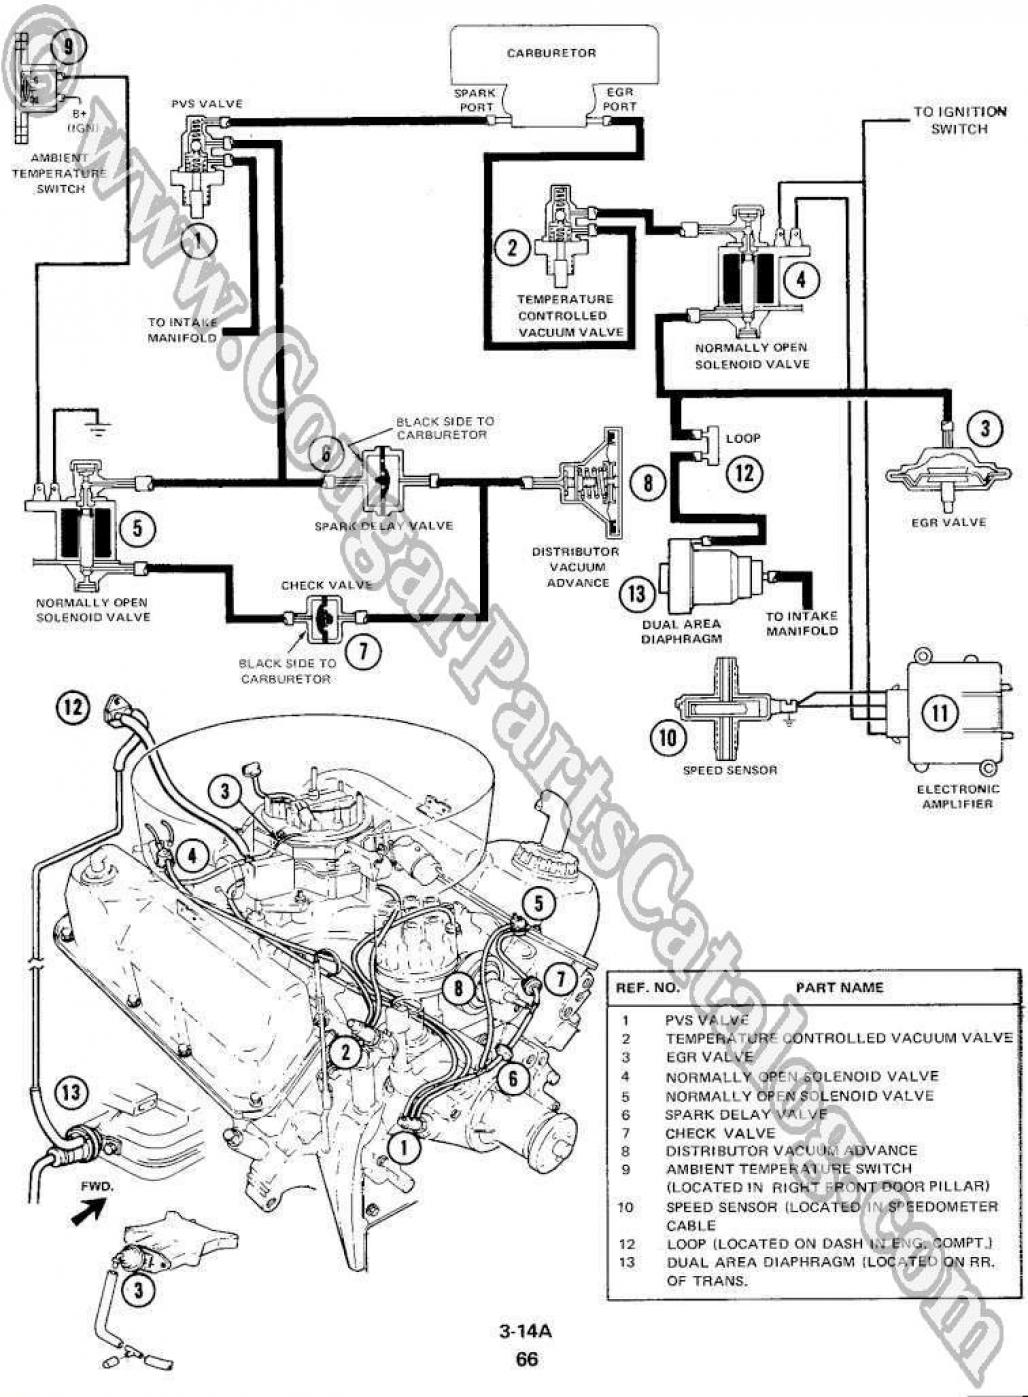 [DIAGRAM] Harley Davidson 1996 Softail Wiring Diagram FULL